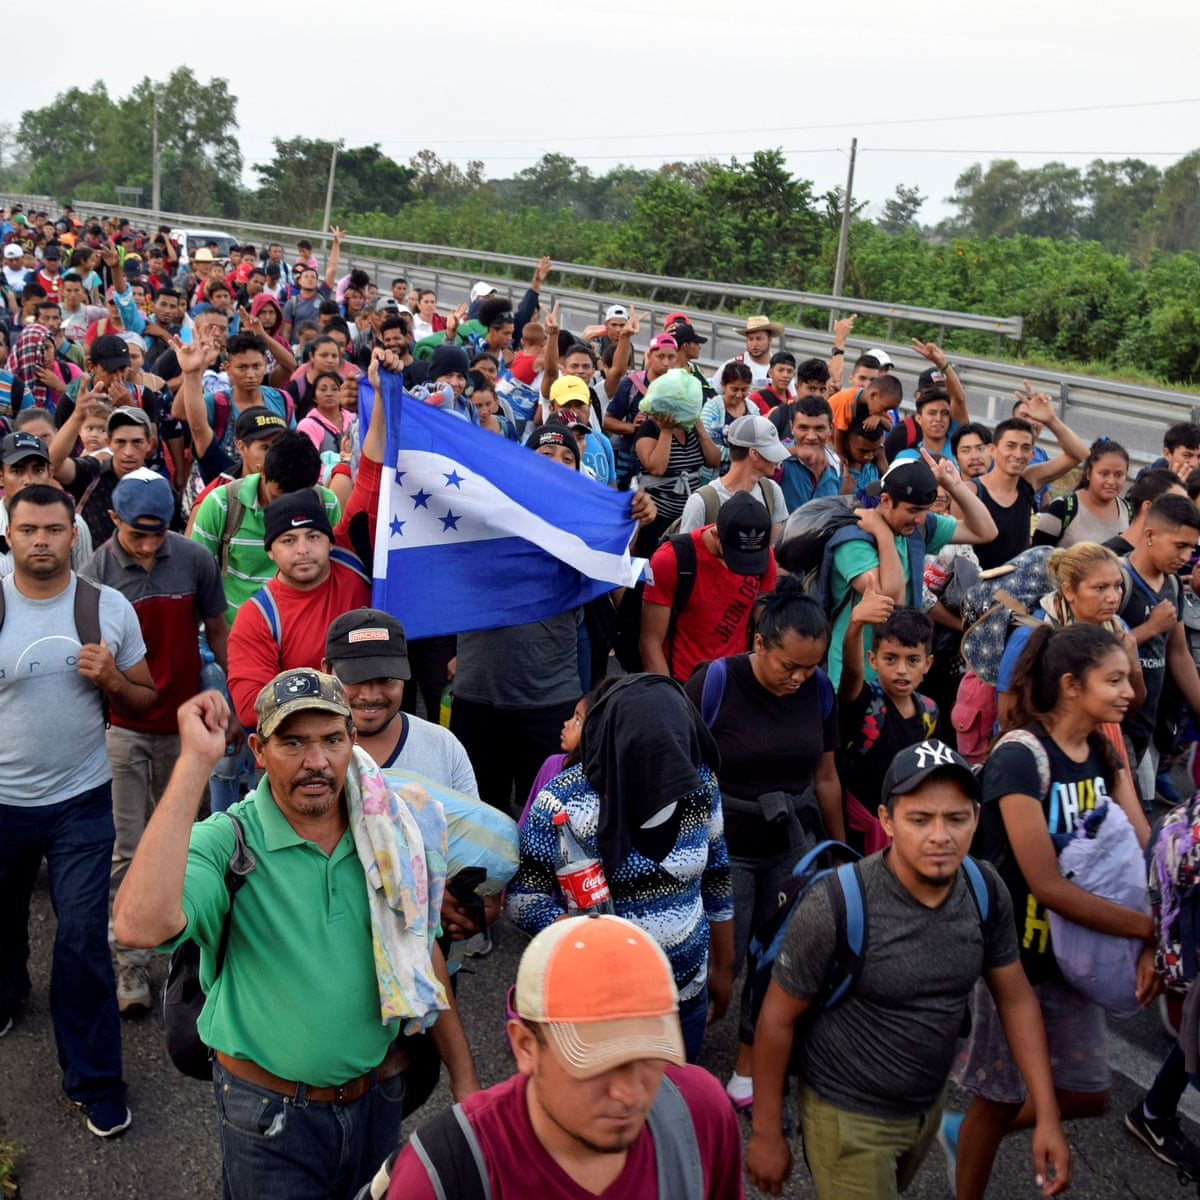 New migrant caravan receives cooler welcome in Mexico | Migration ...